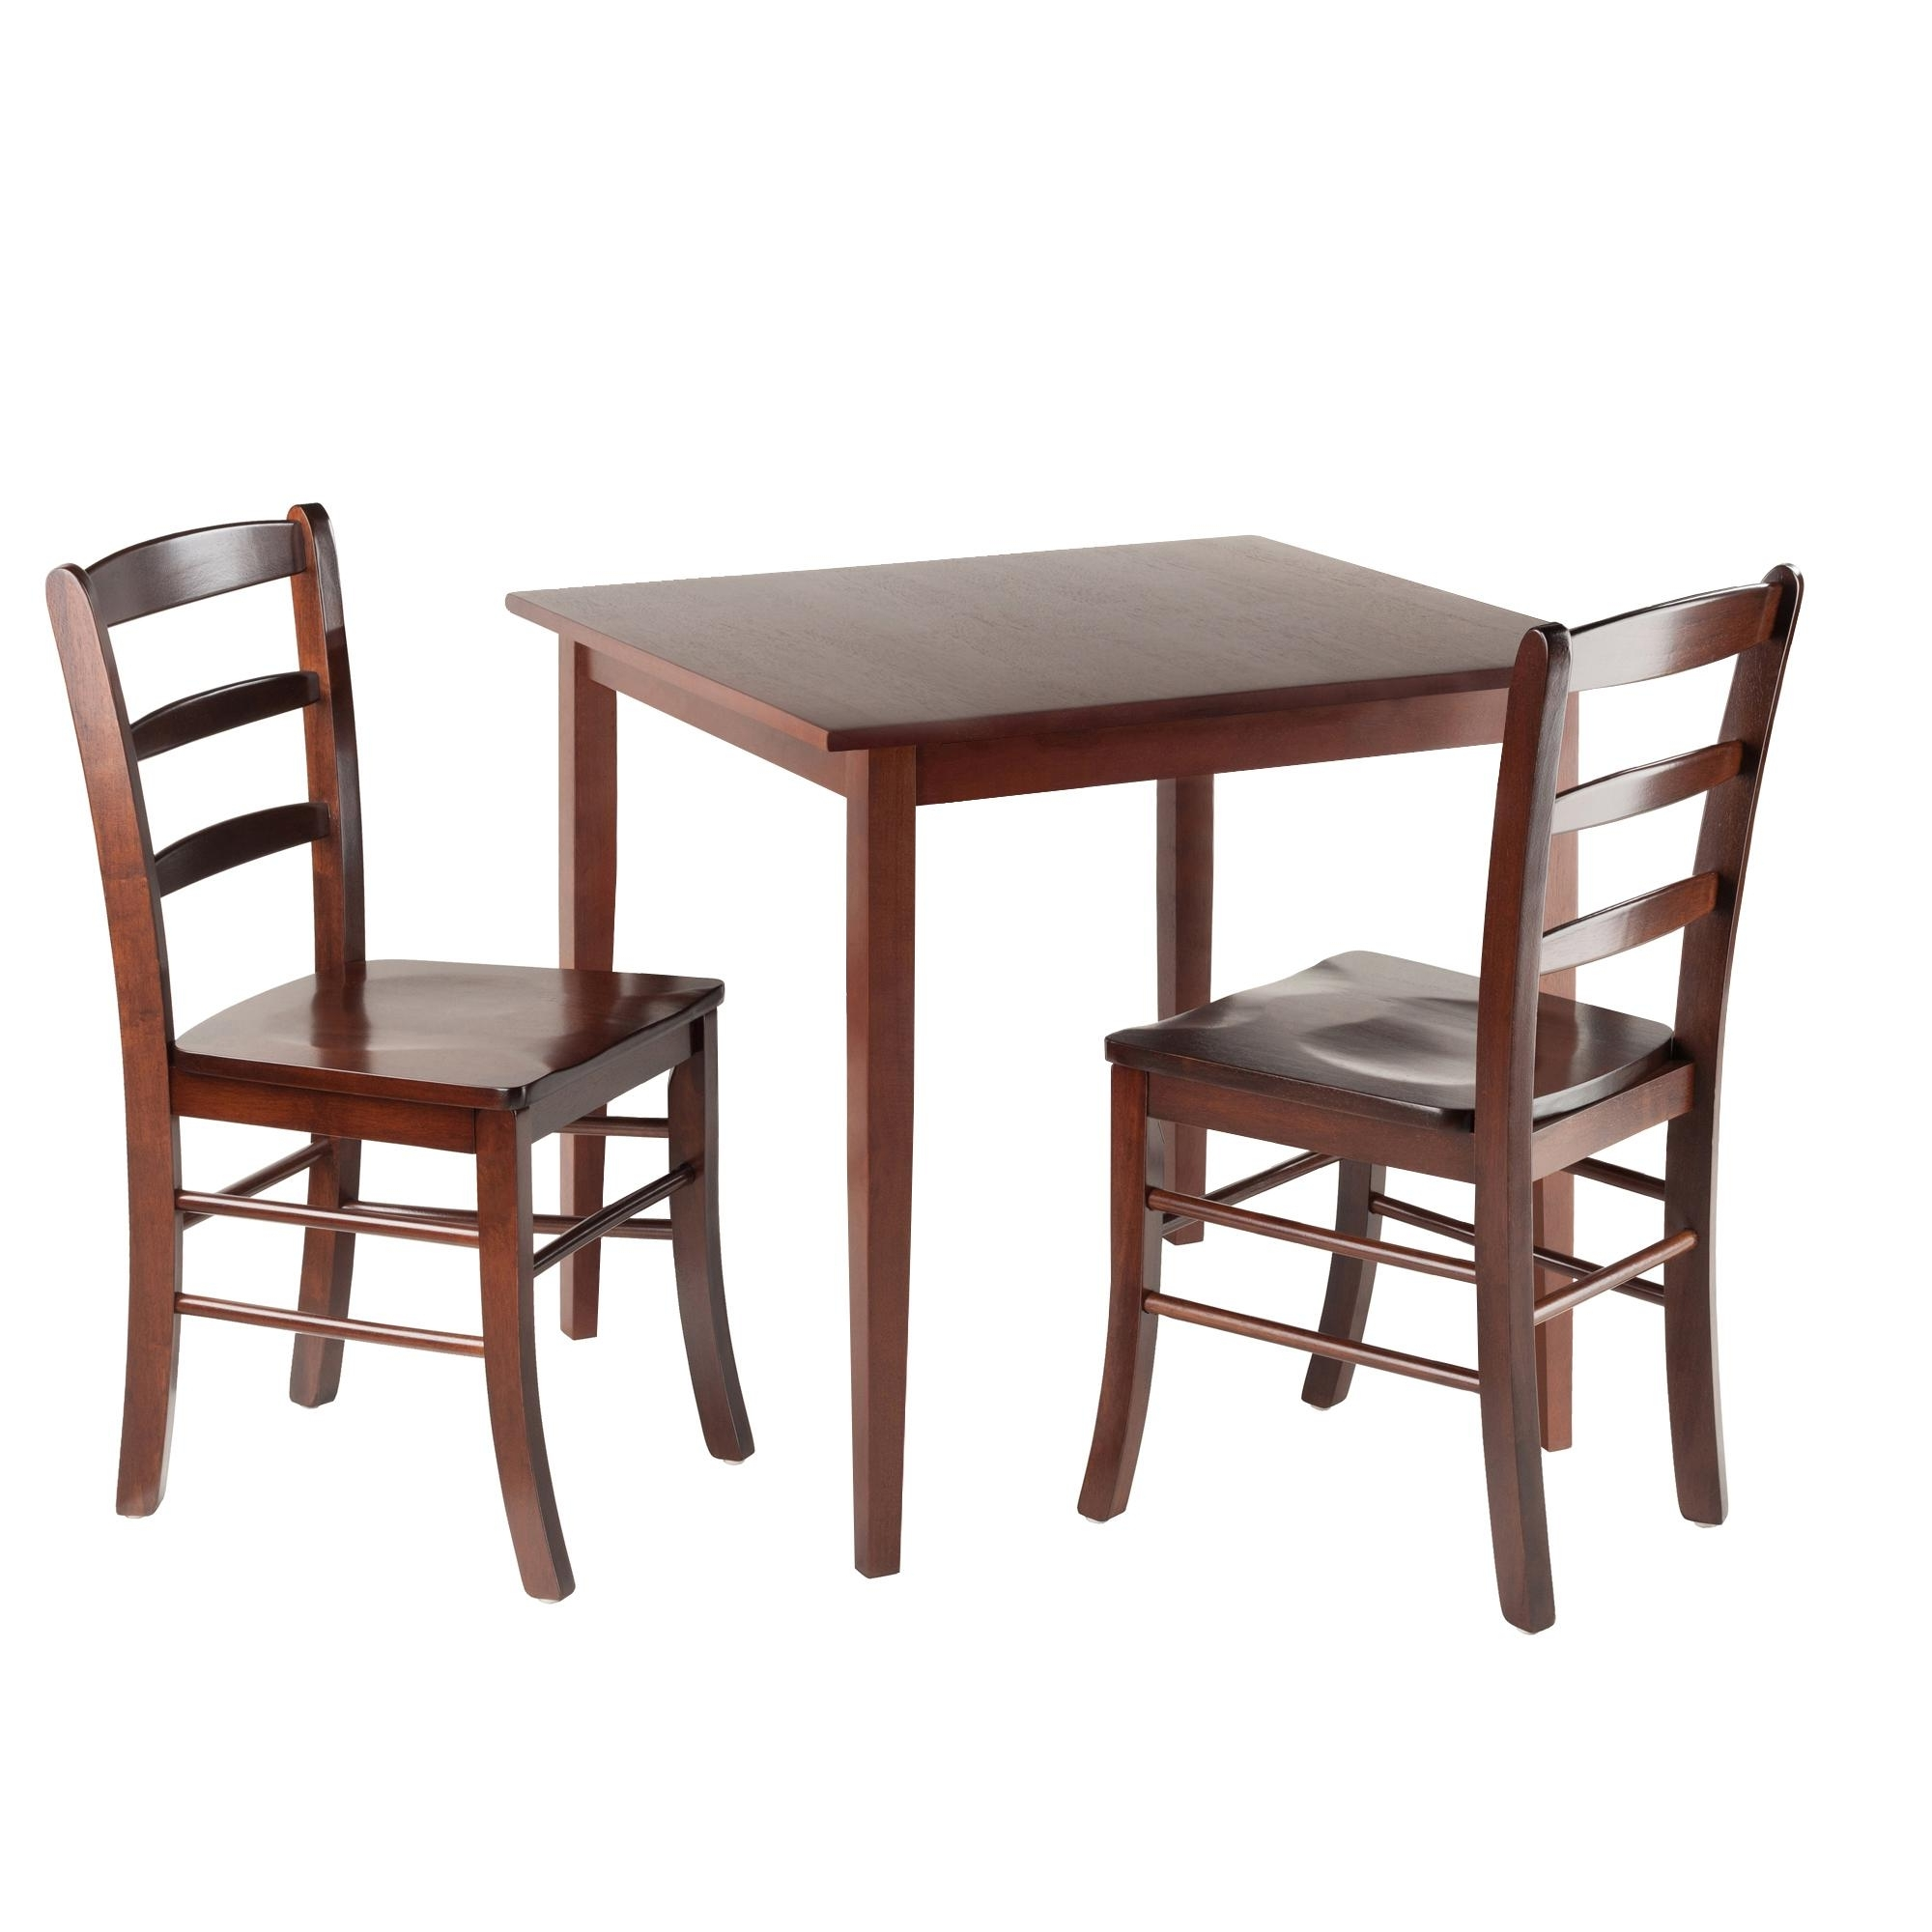 Amazon – Winsome Groveland Square Dining Table With 2 Chairs, 3 Inside Trendy Kitchen Dining Tables And Chairs (View 1 of 25)